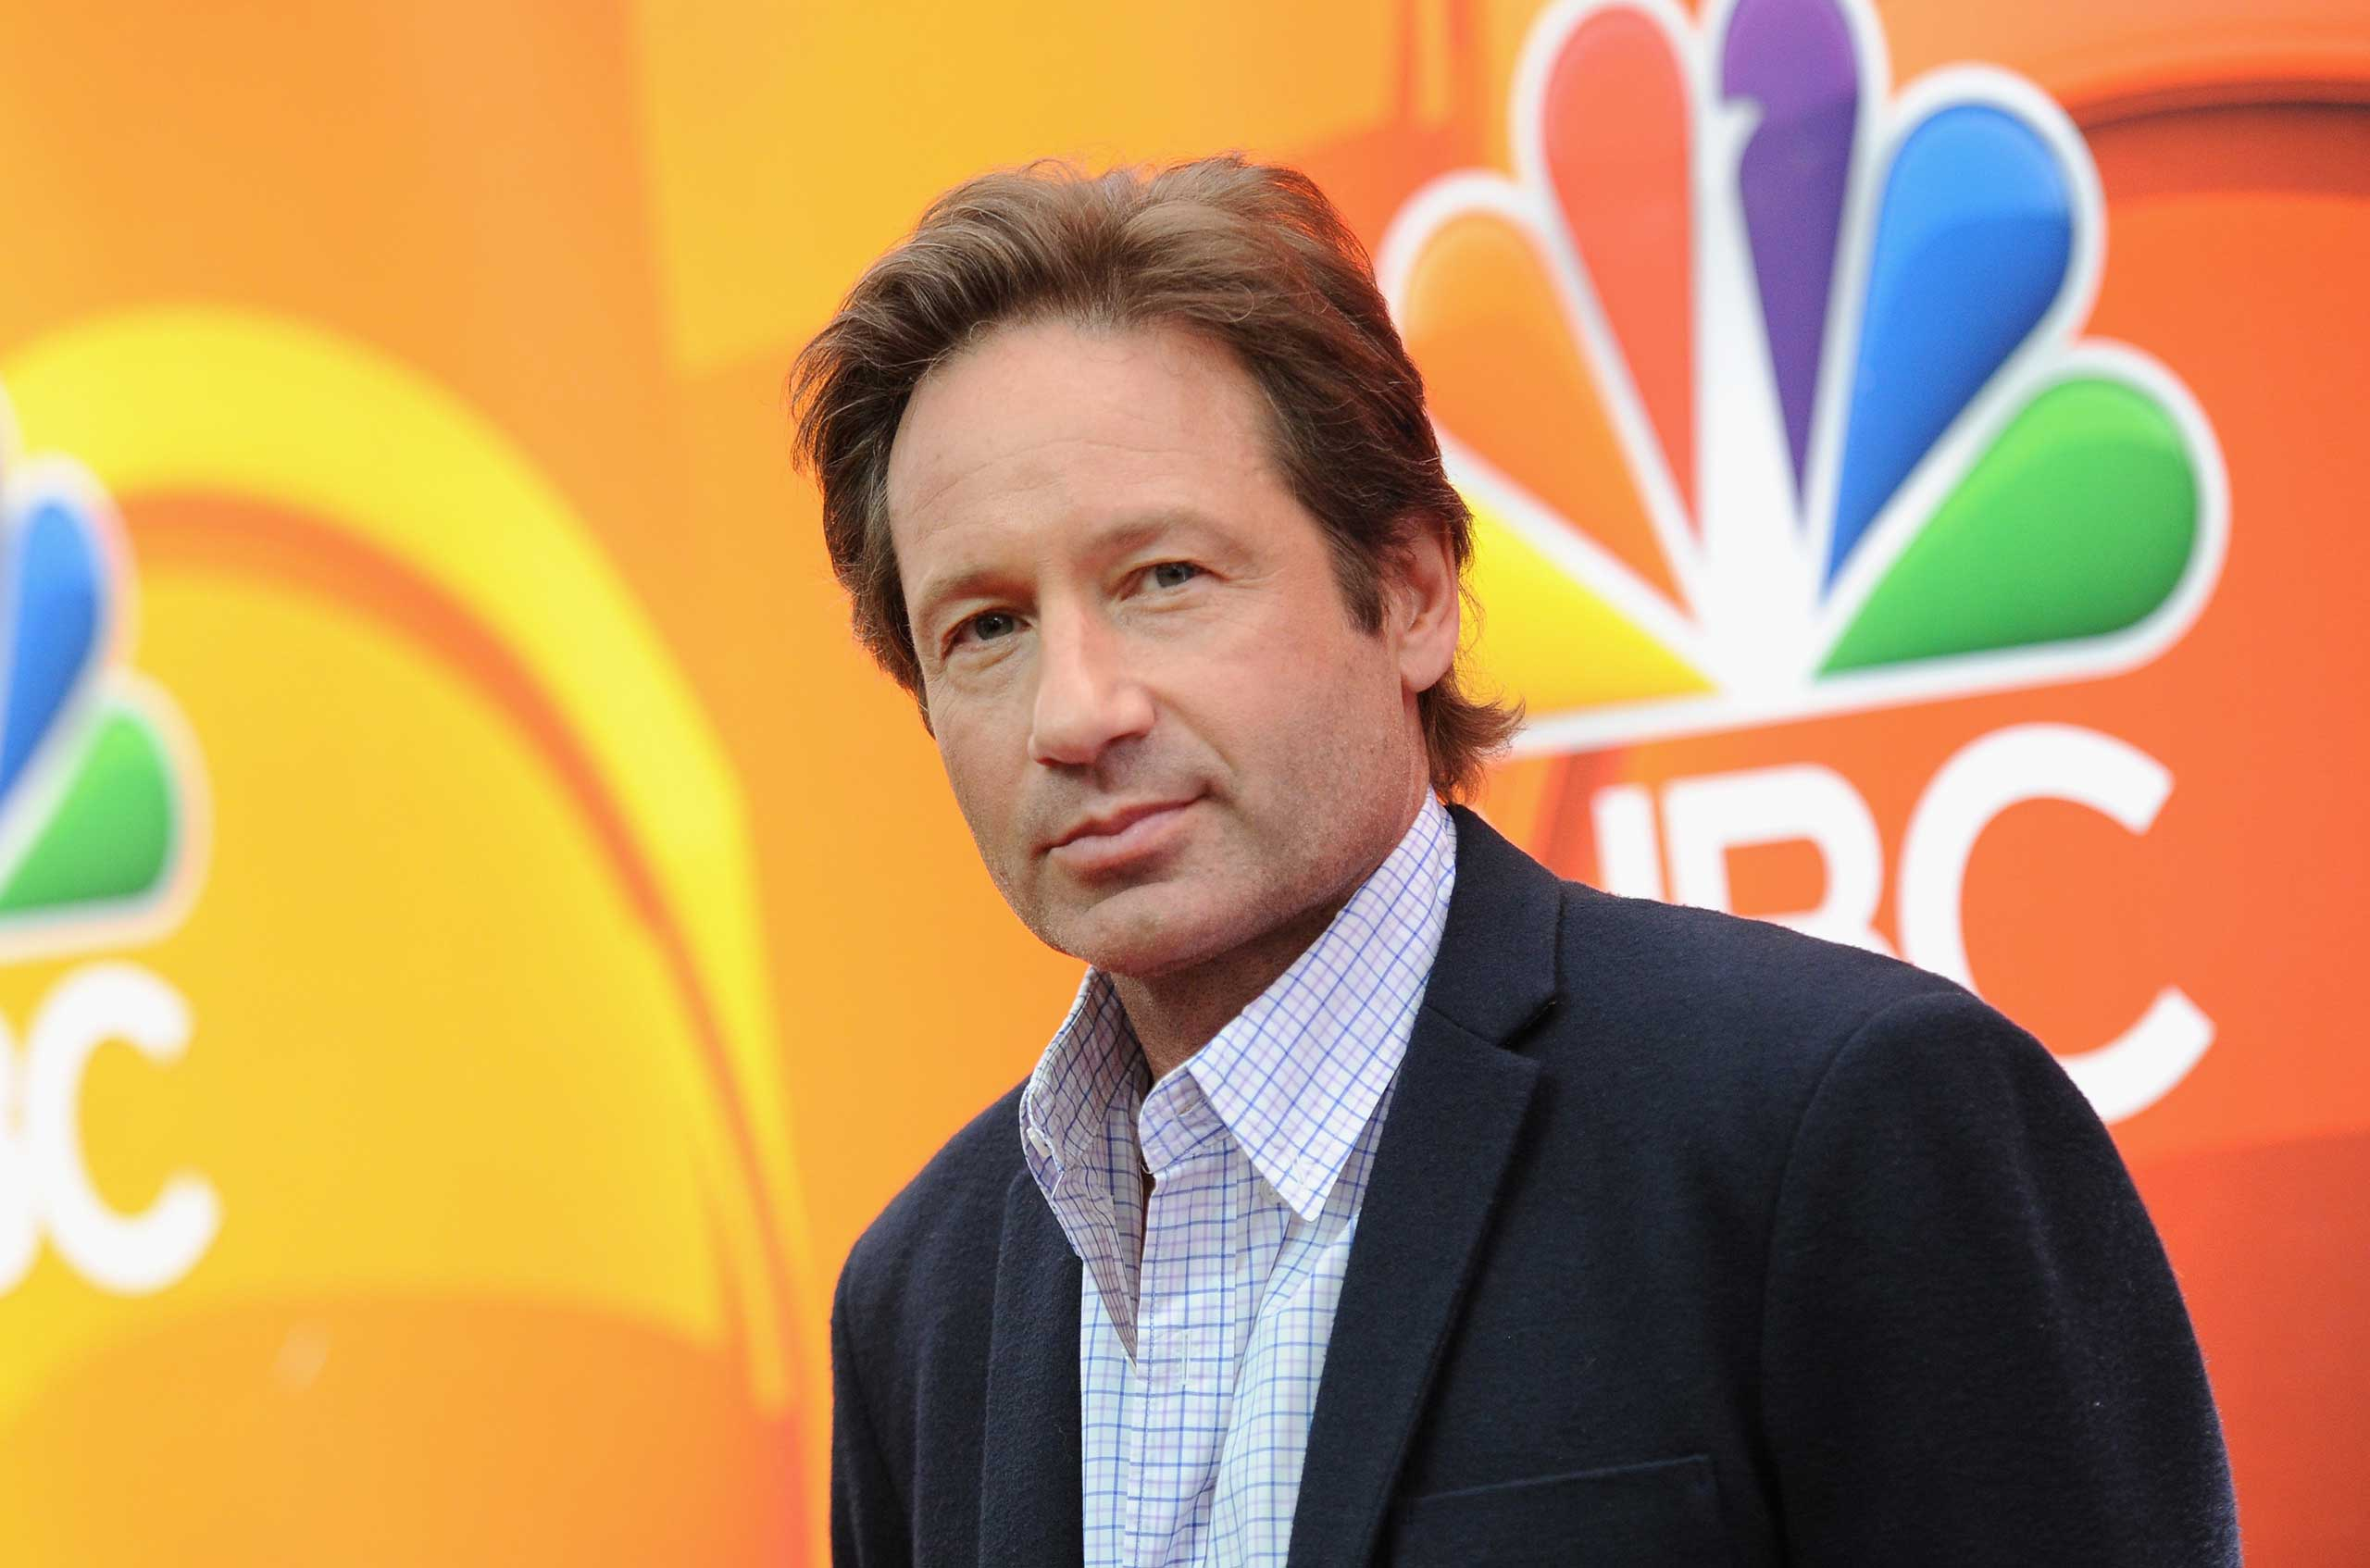 David Duchovny at Radio City Music Hall in New York on May 11, 2015.